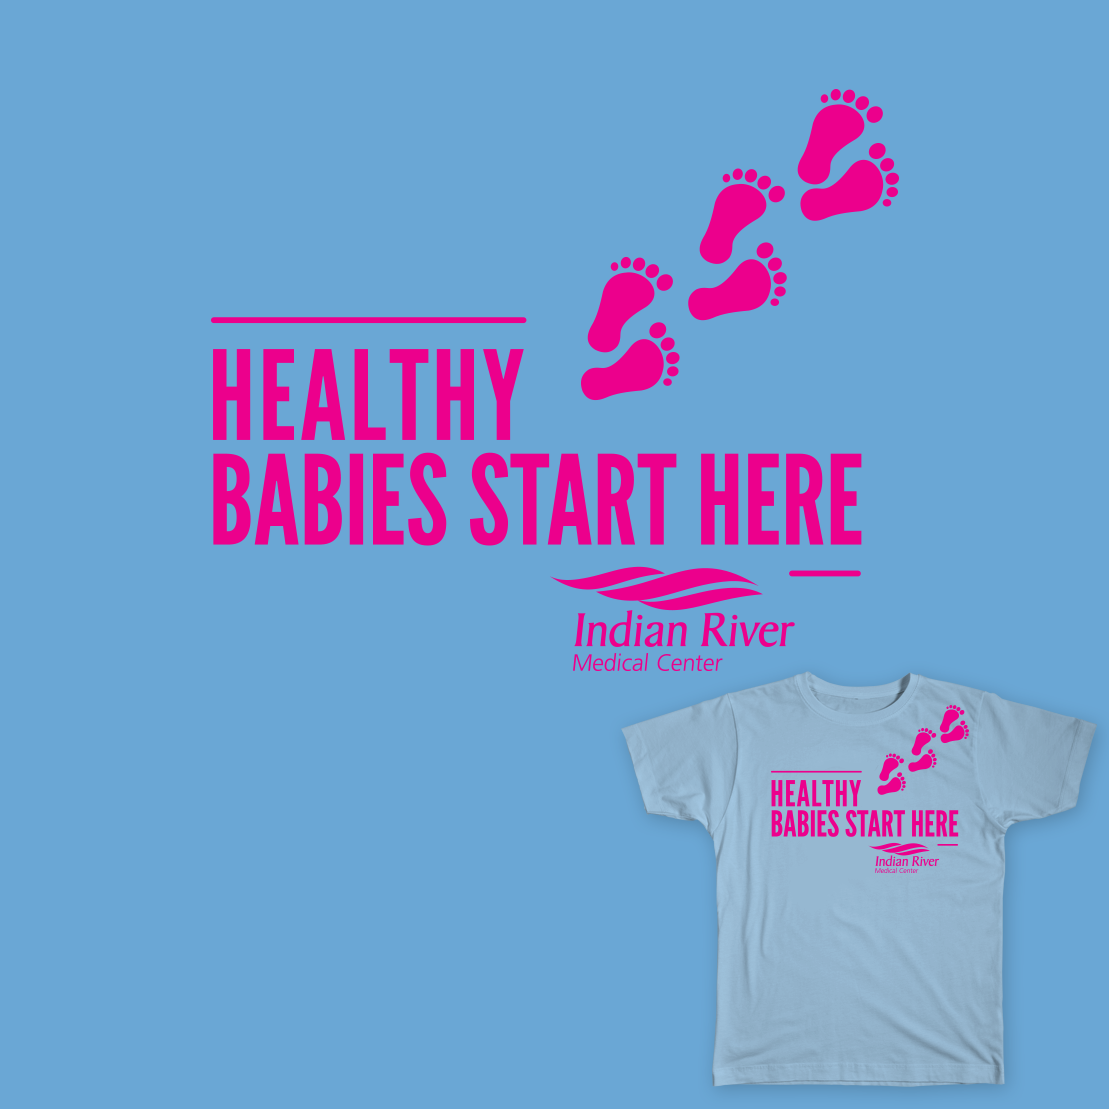 Inidan River Medical Center - March of Dimes Tee Design